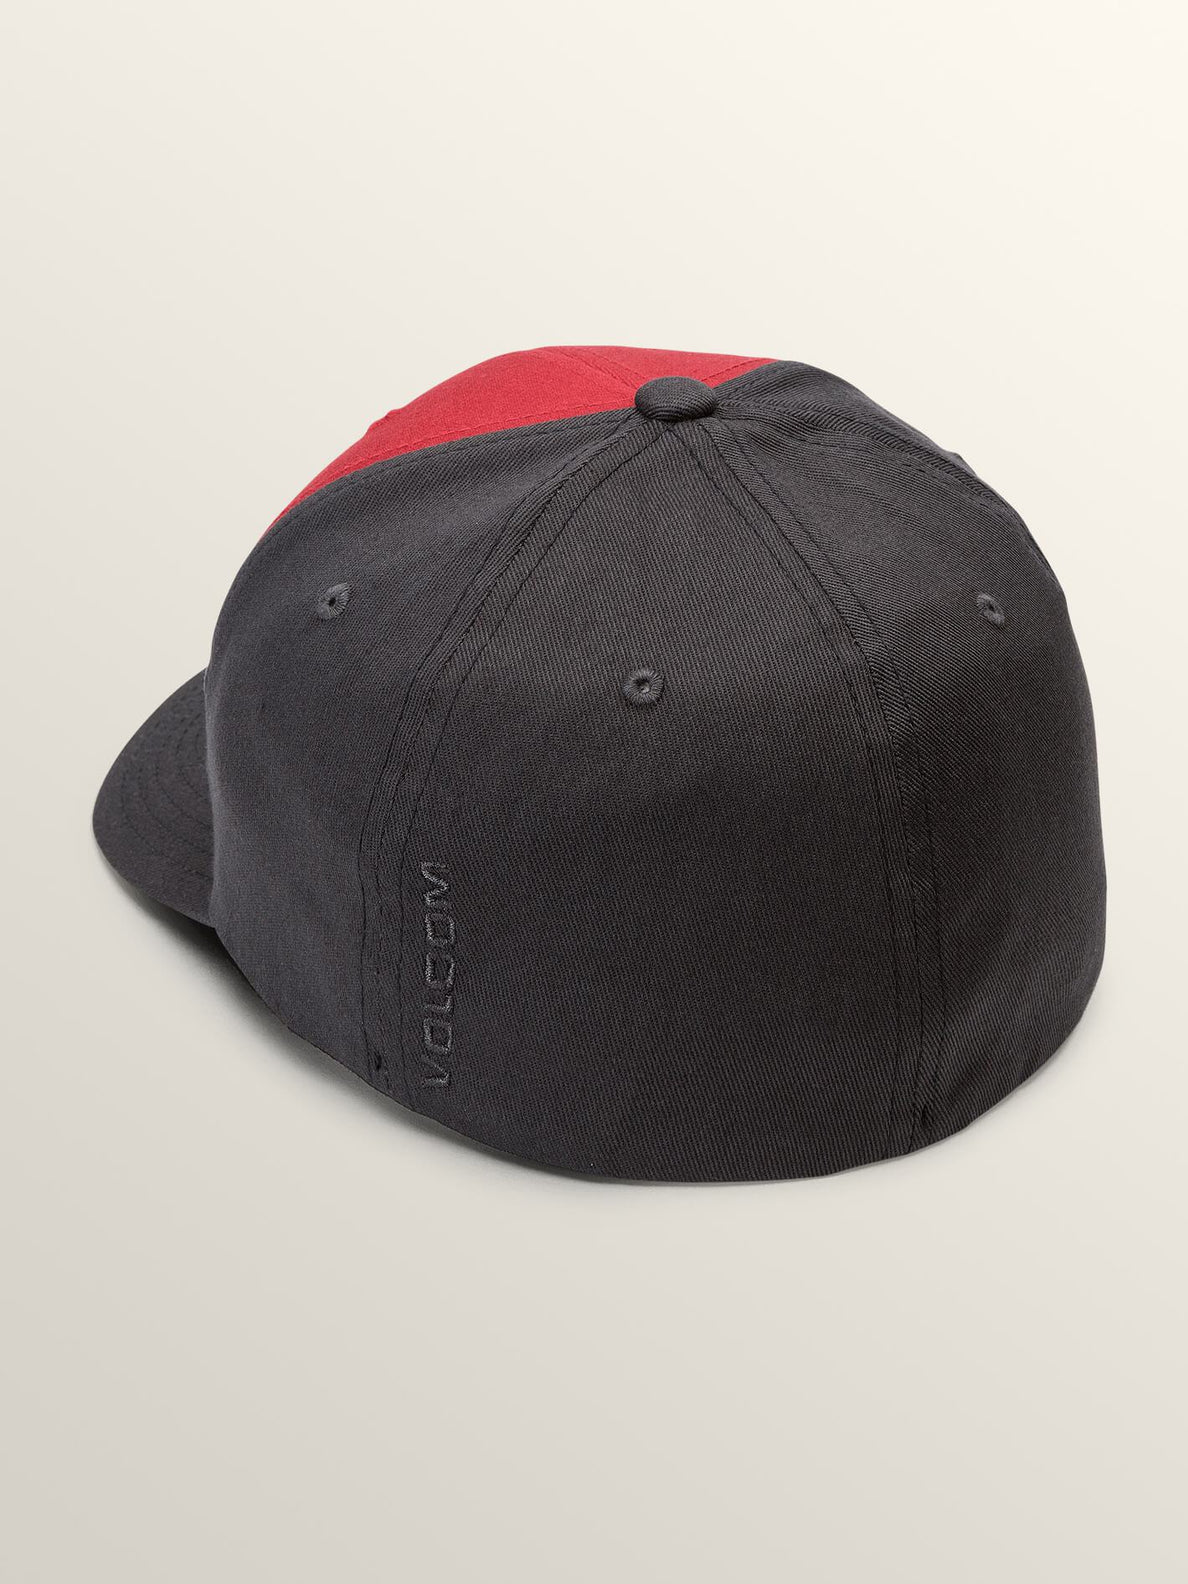 Full Stone Xfit Hat In Engine Red, Alternate View